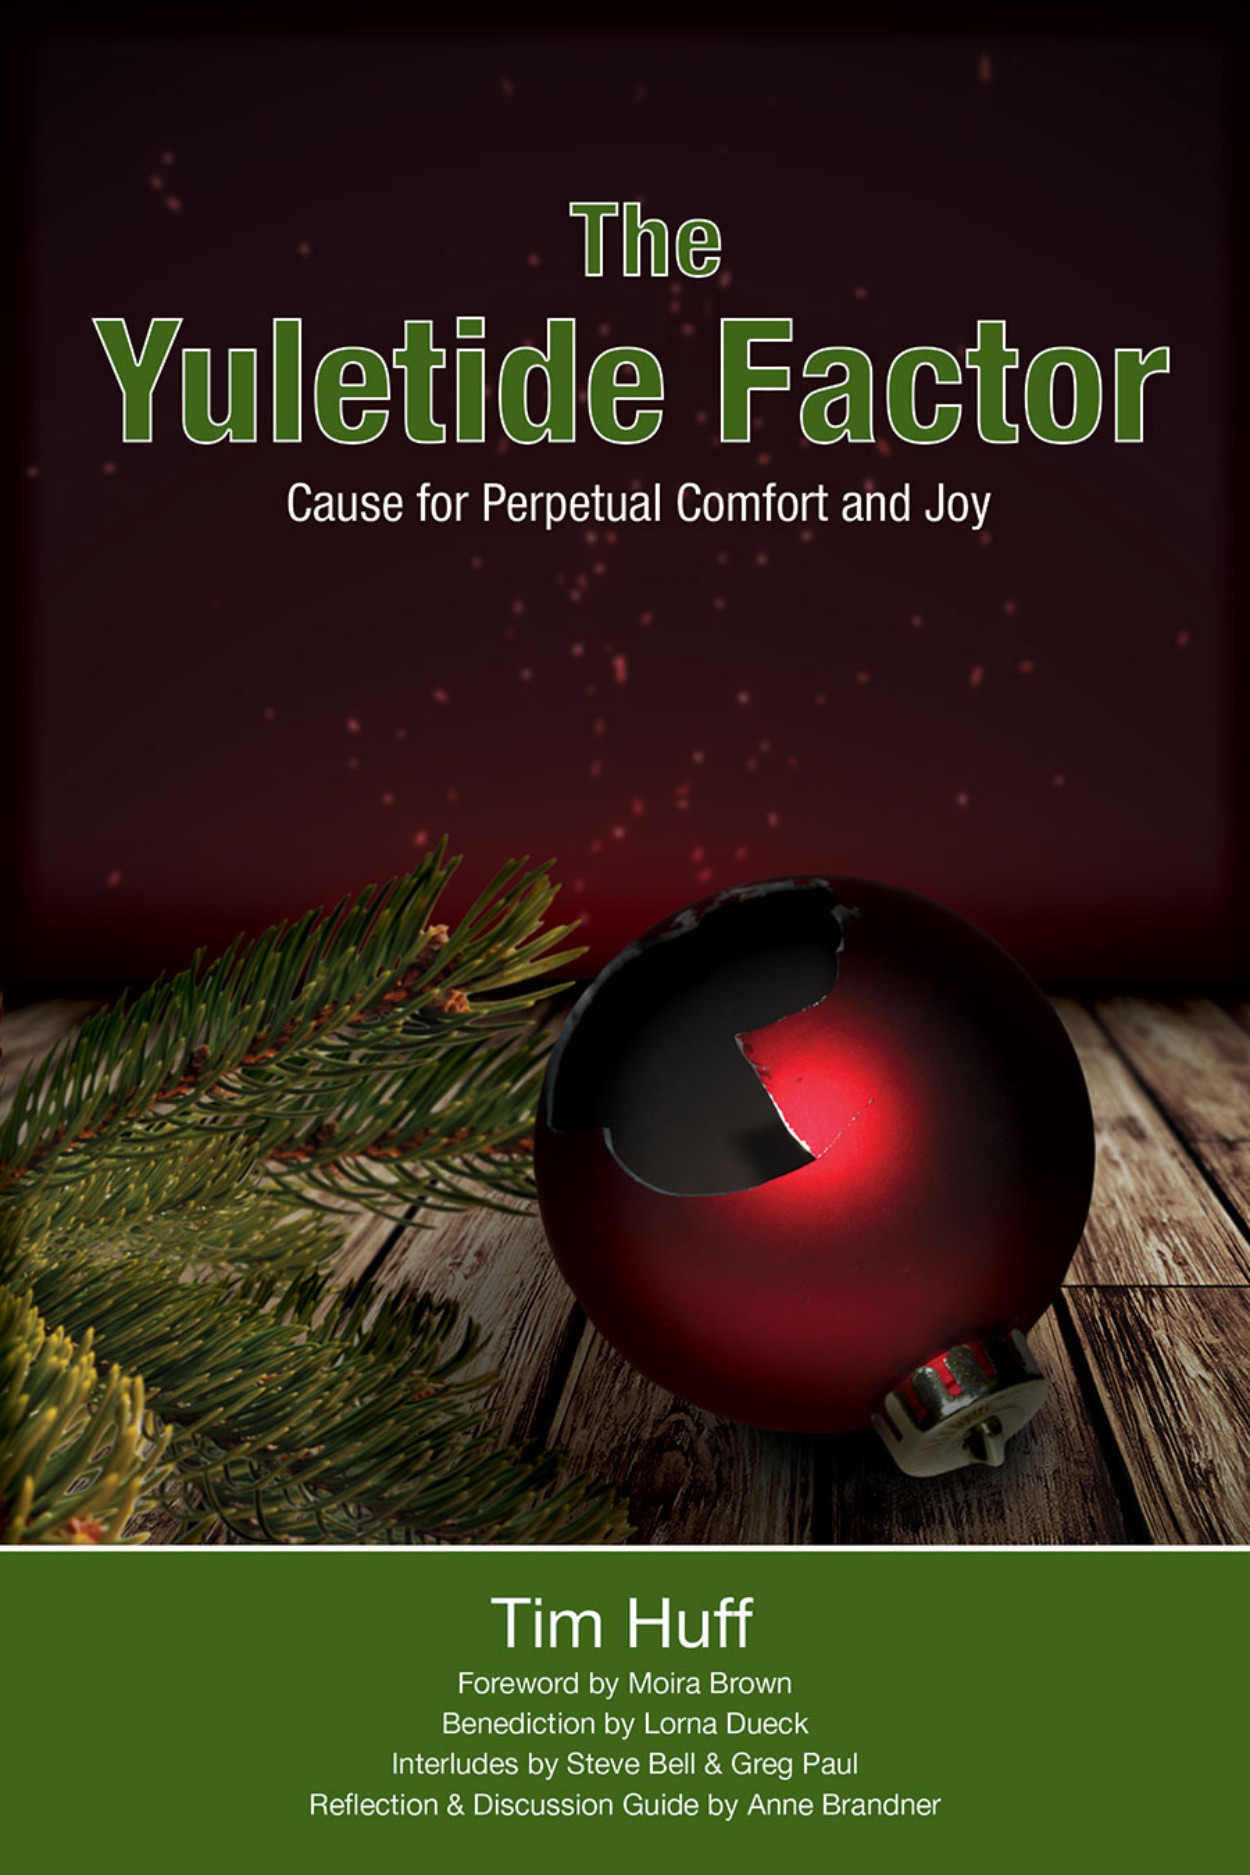 THE YULETIDE FACTOR: Cause for Perpetual Comfort and Joy